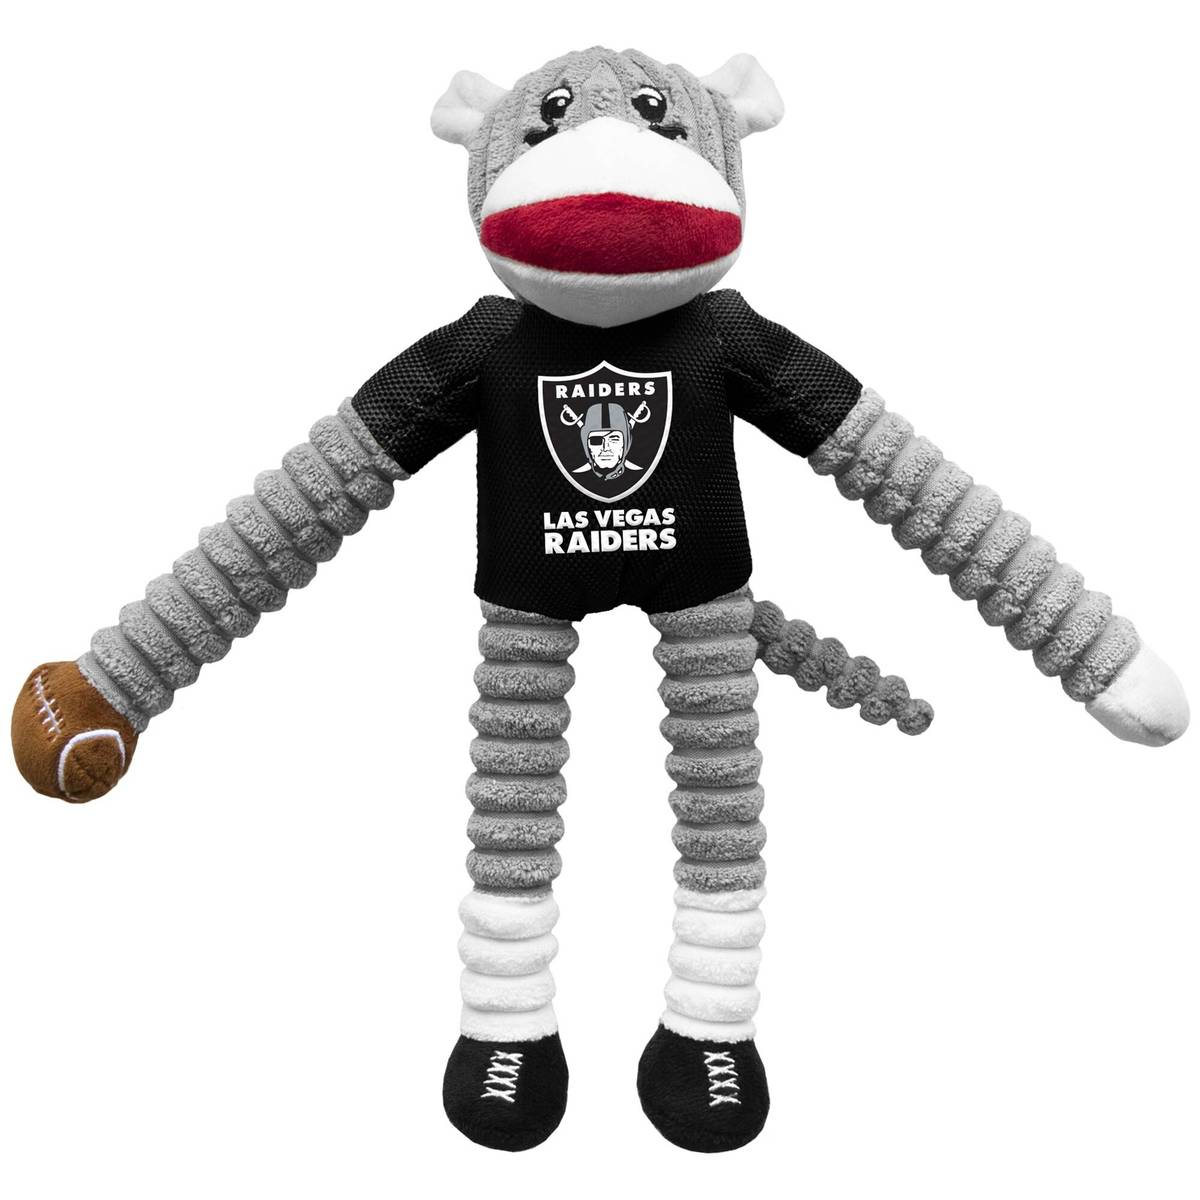 The Little Earth Las Vegas Raiders Sock Monkey pet toy is plush and cuddly — perfect for sink ...